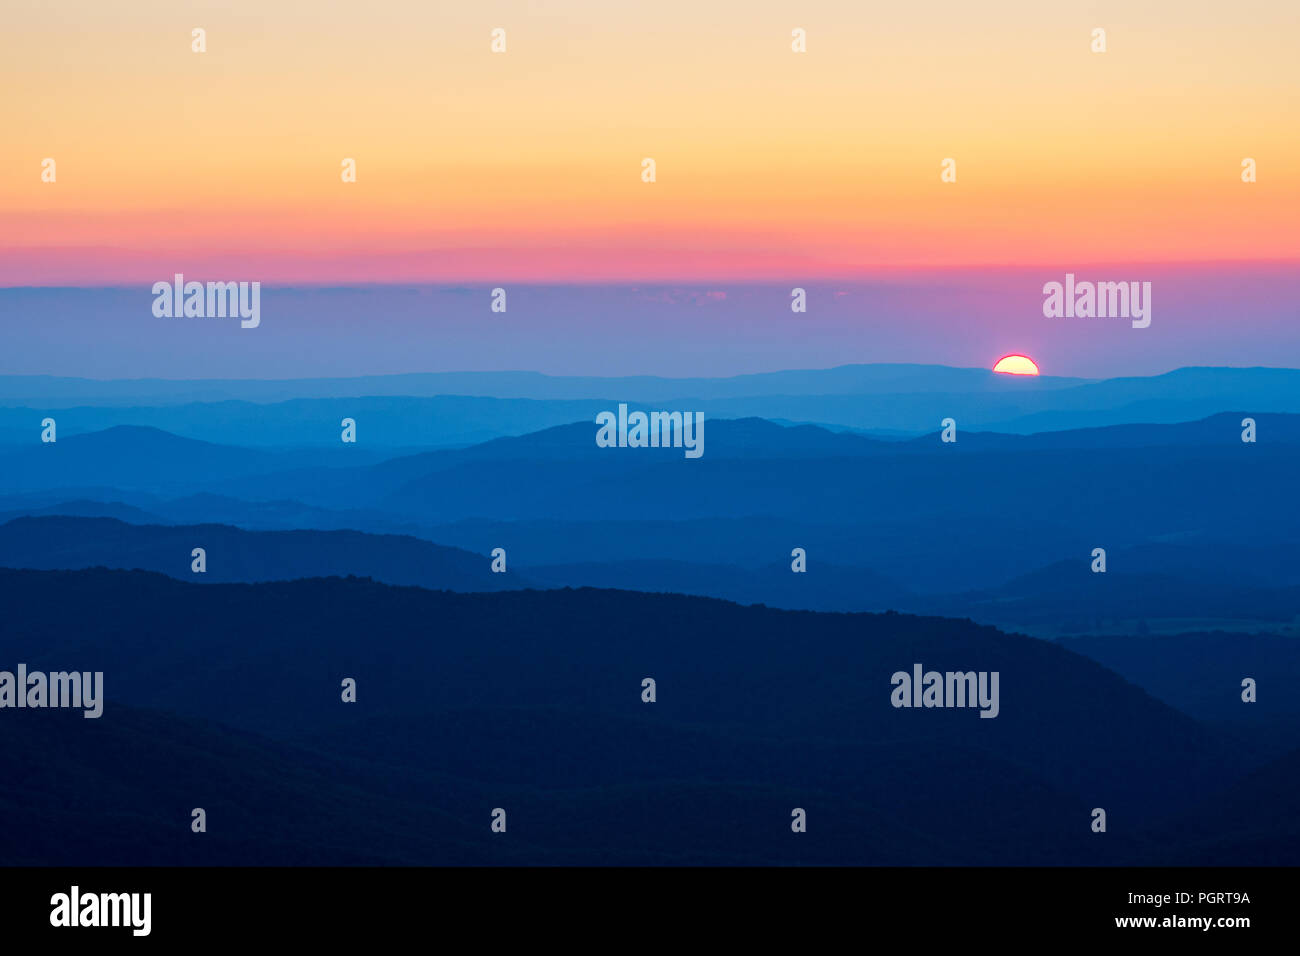 A sliver of the sun can be seen dropping below the distant blue mountain ridges of West Virginia, giving the impression of ocean waves. - Stock Image